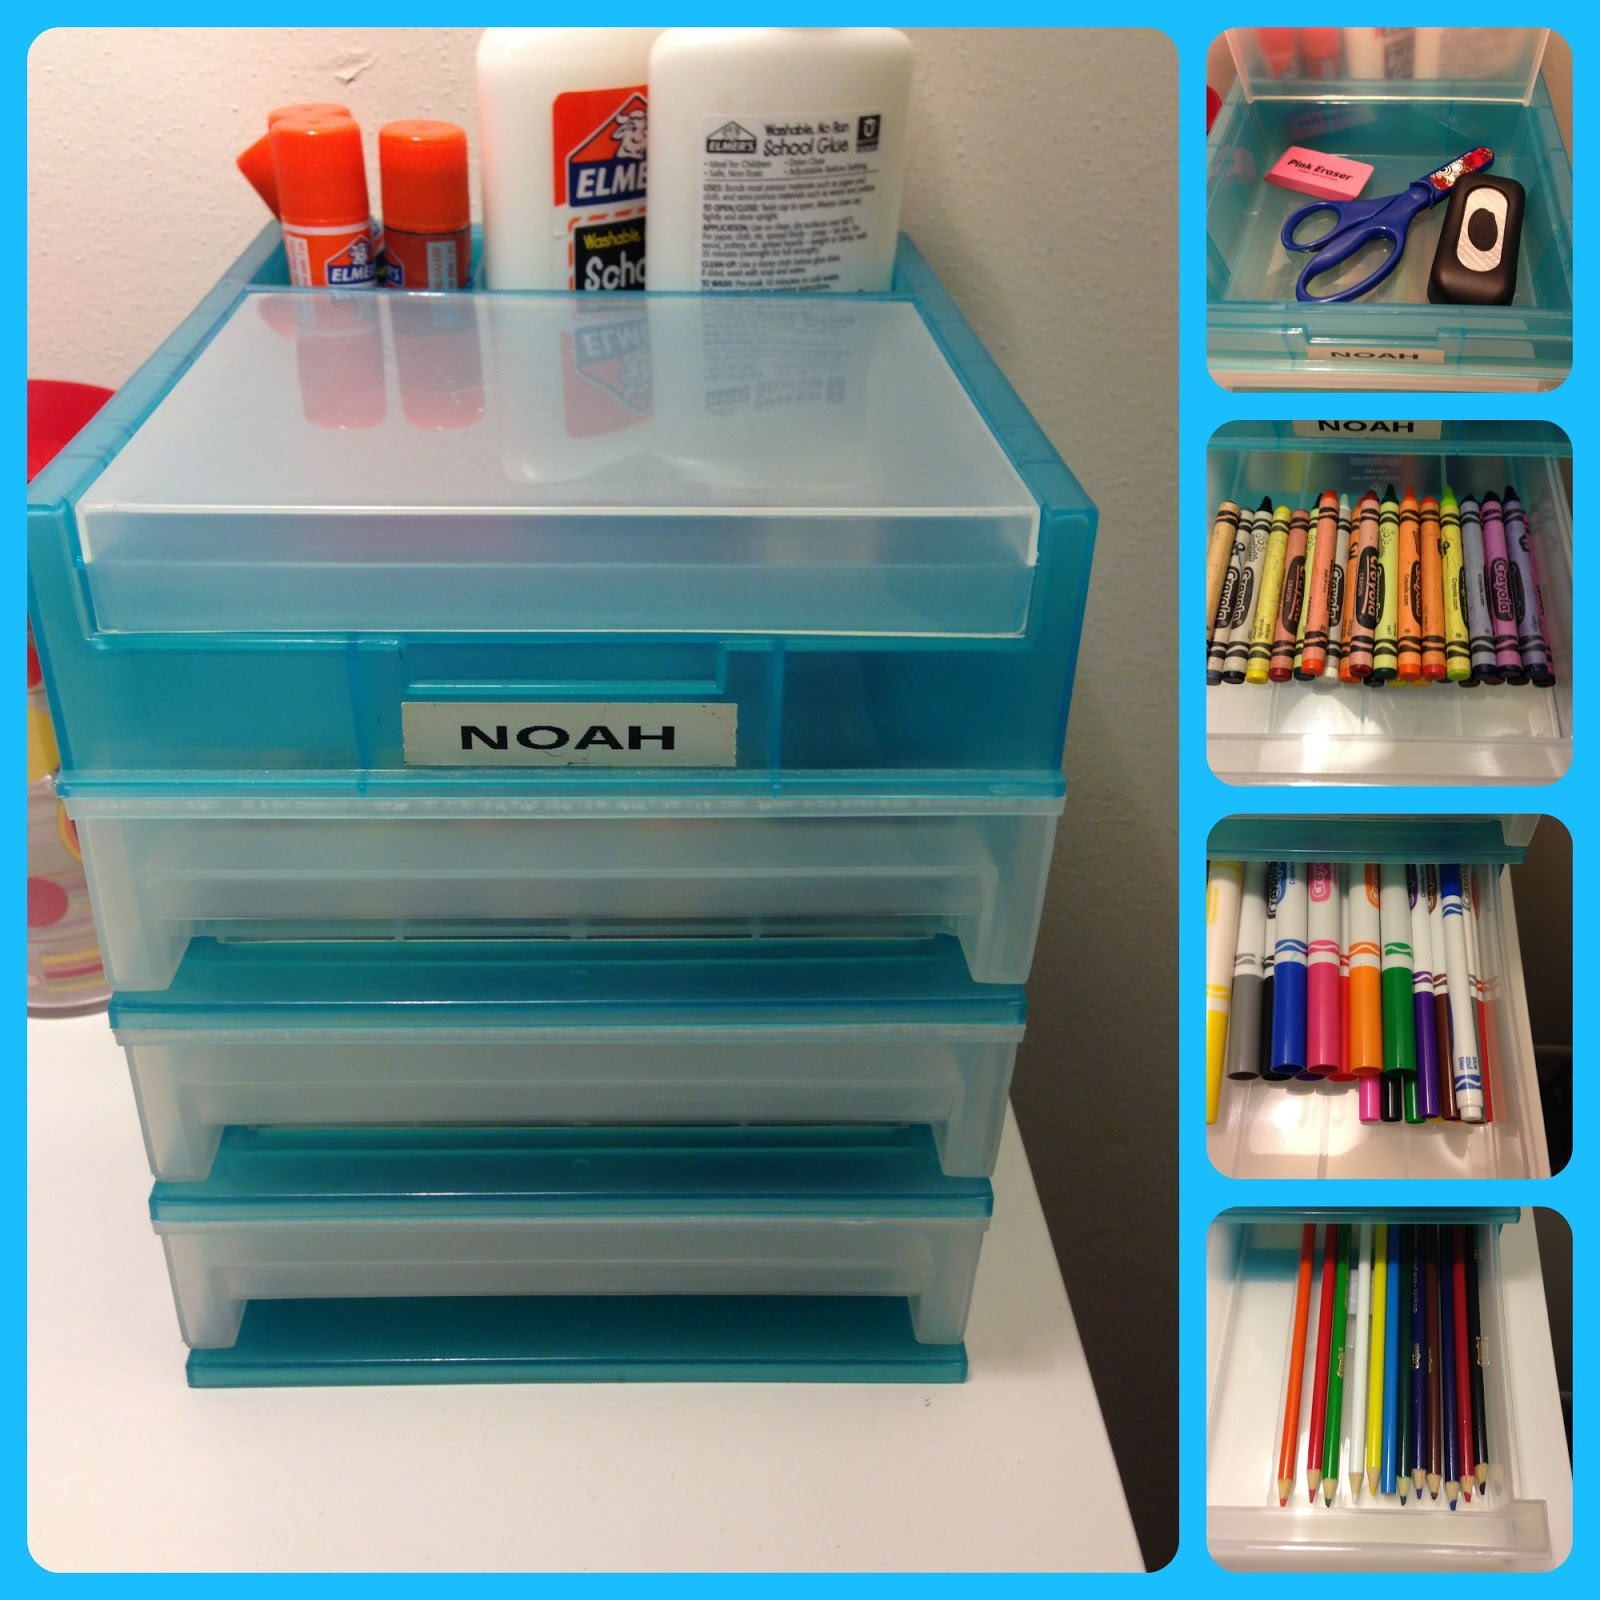 Noah Has The Same Desk Top Organizer, Under His Plastic Lid Are Scissors  And Erasers. Drawer 1 Is Crayons, Drawer 2 Has Markers, And Drawer 3 Holds  His ...